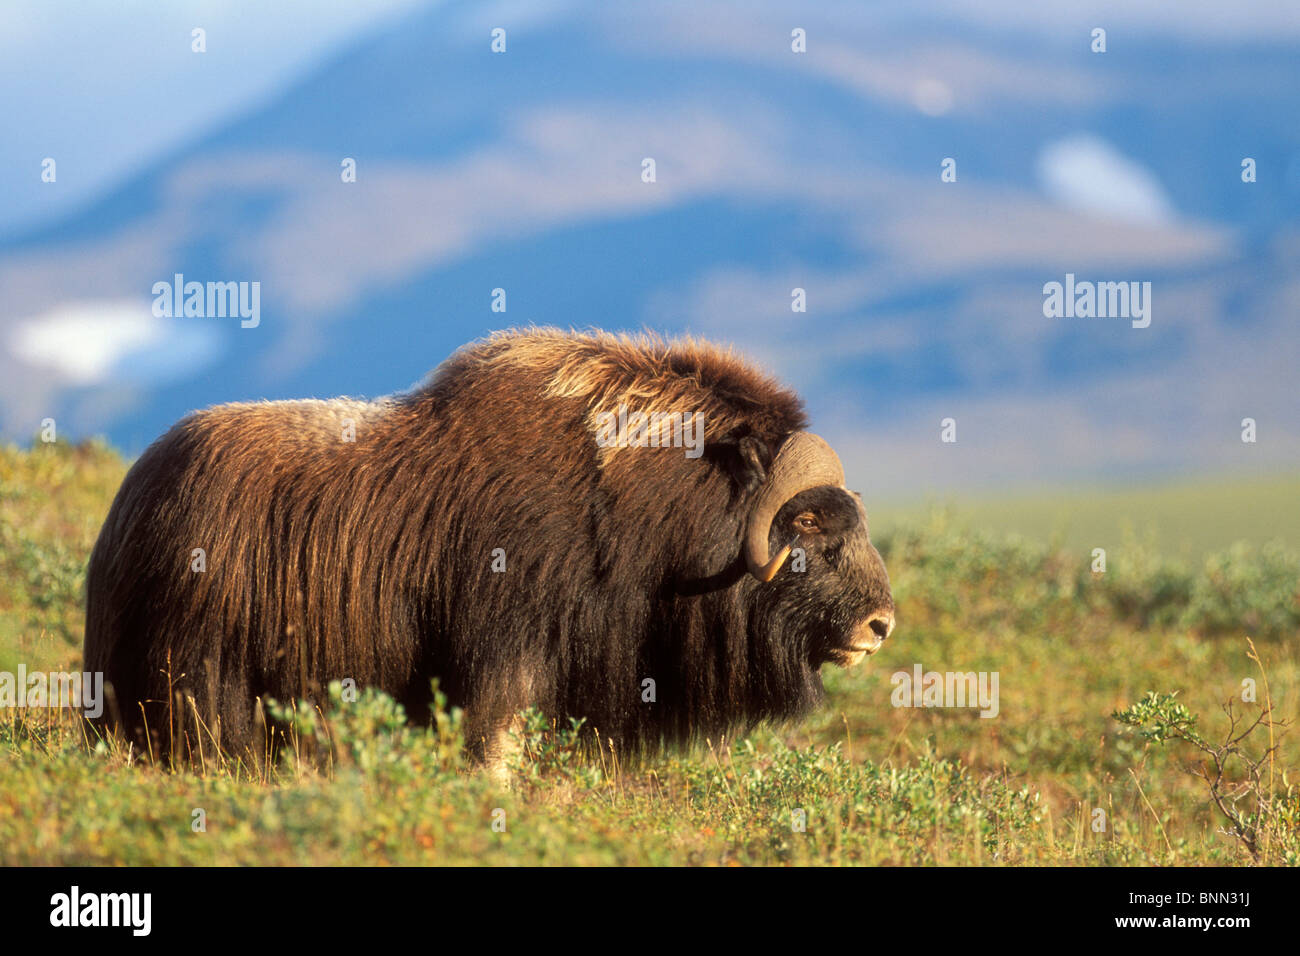 Musk ox bull standing on tundra in late summer on the Seward Peninsula near Nome, Arctic Alaska - Stock Image